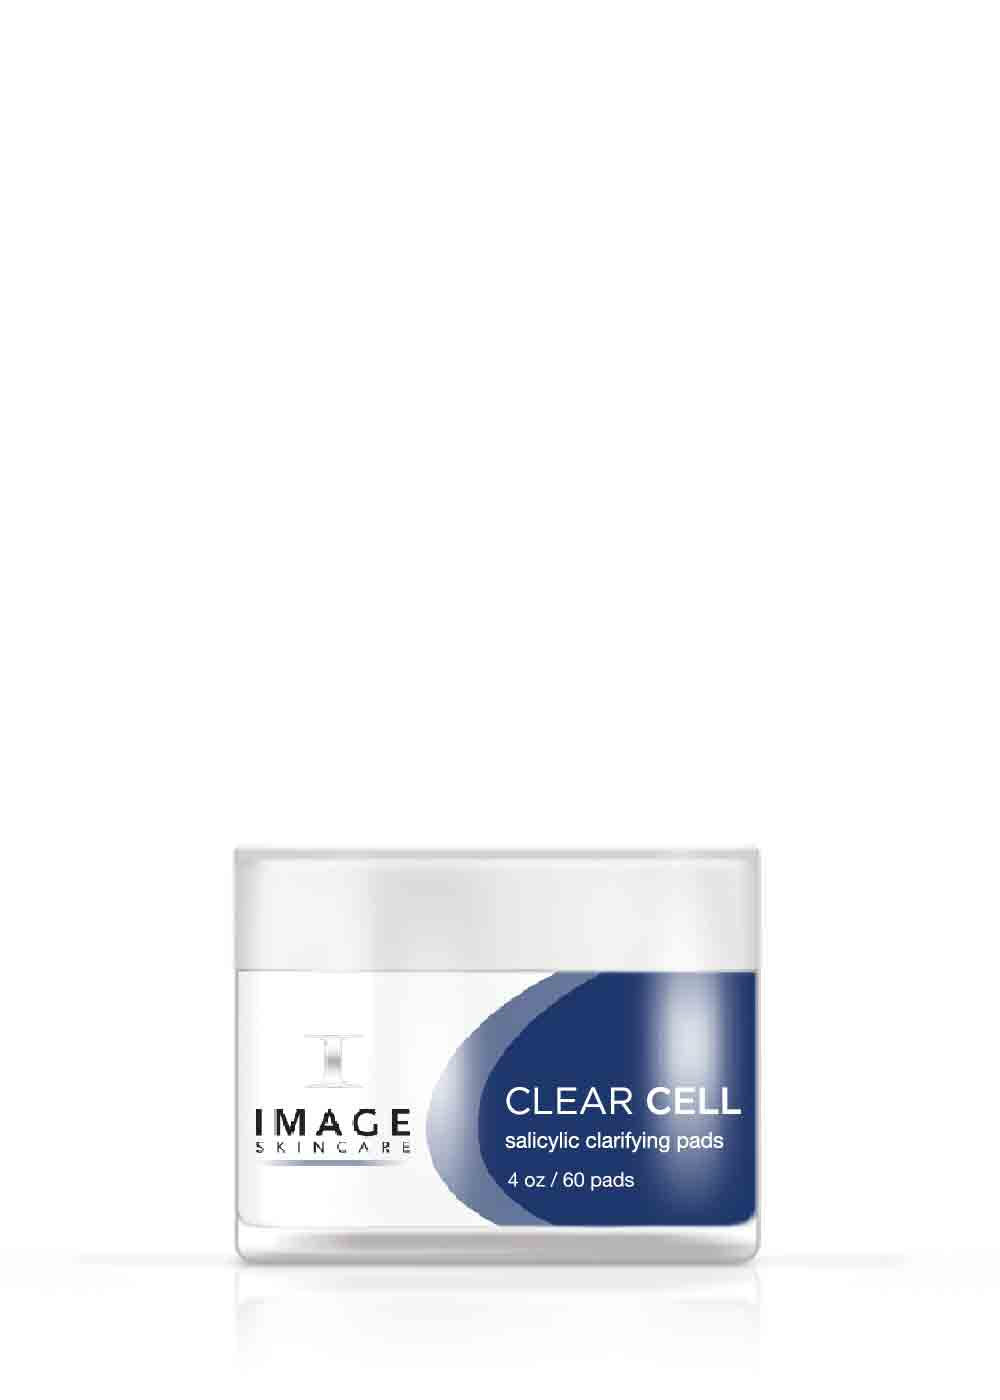 Image-clear-cell-salicylic-clarifying-pads.jpg